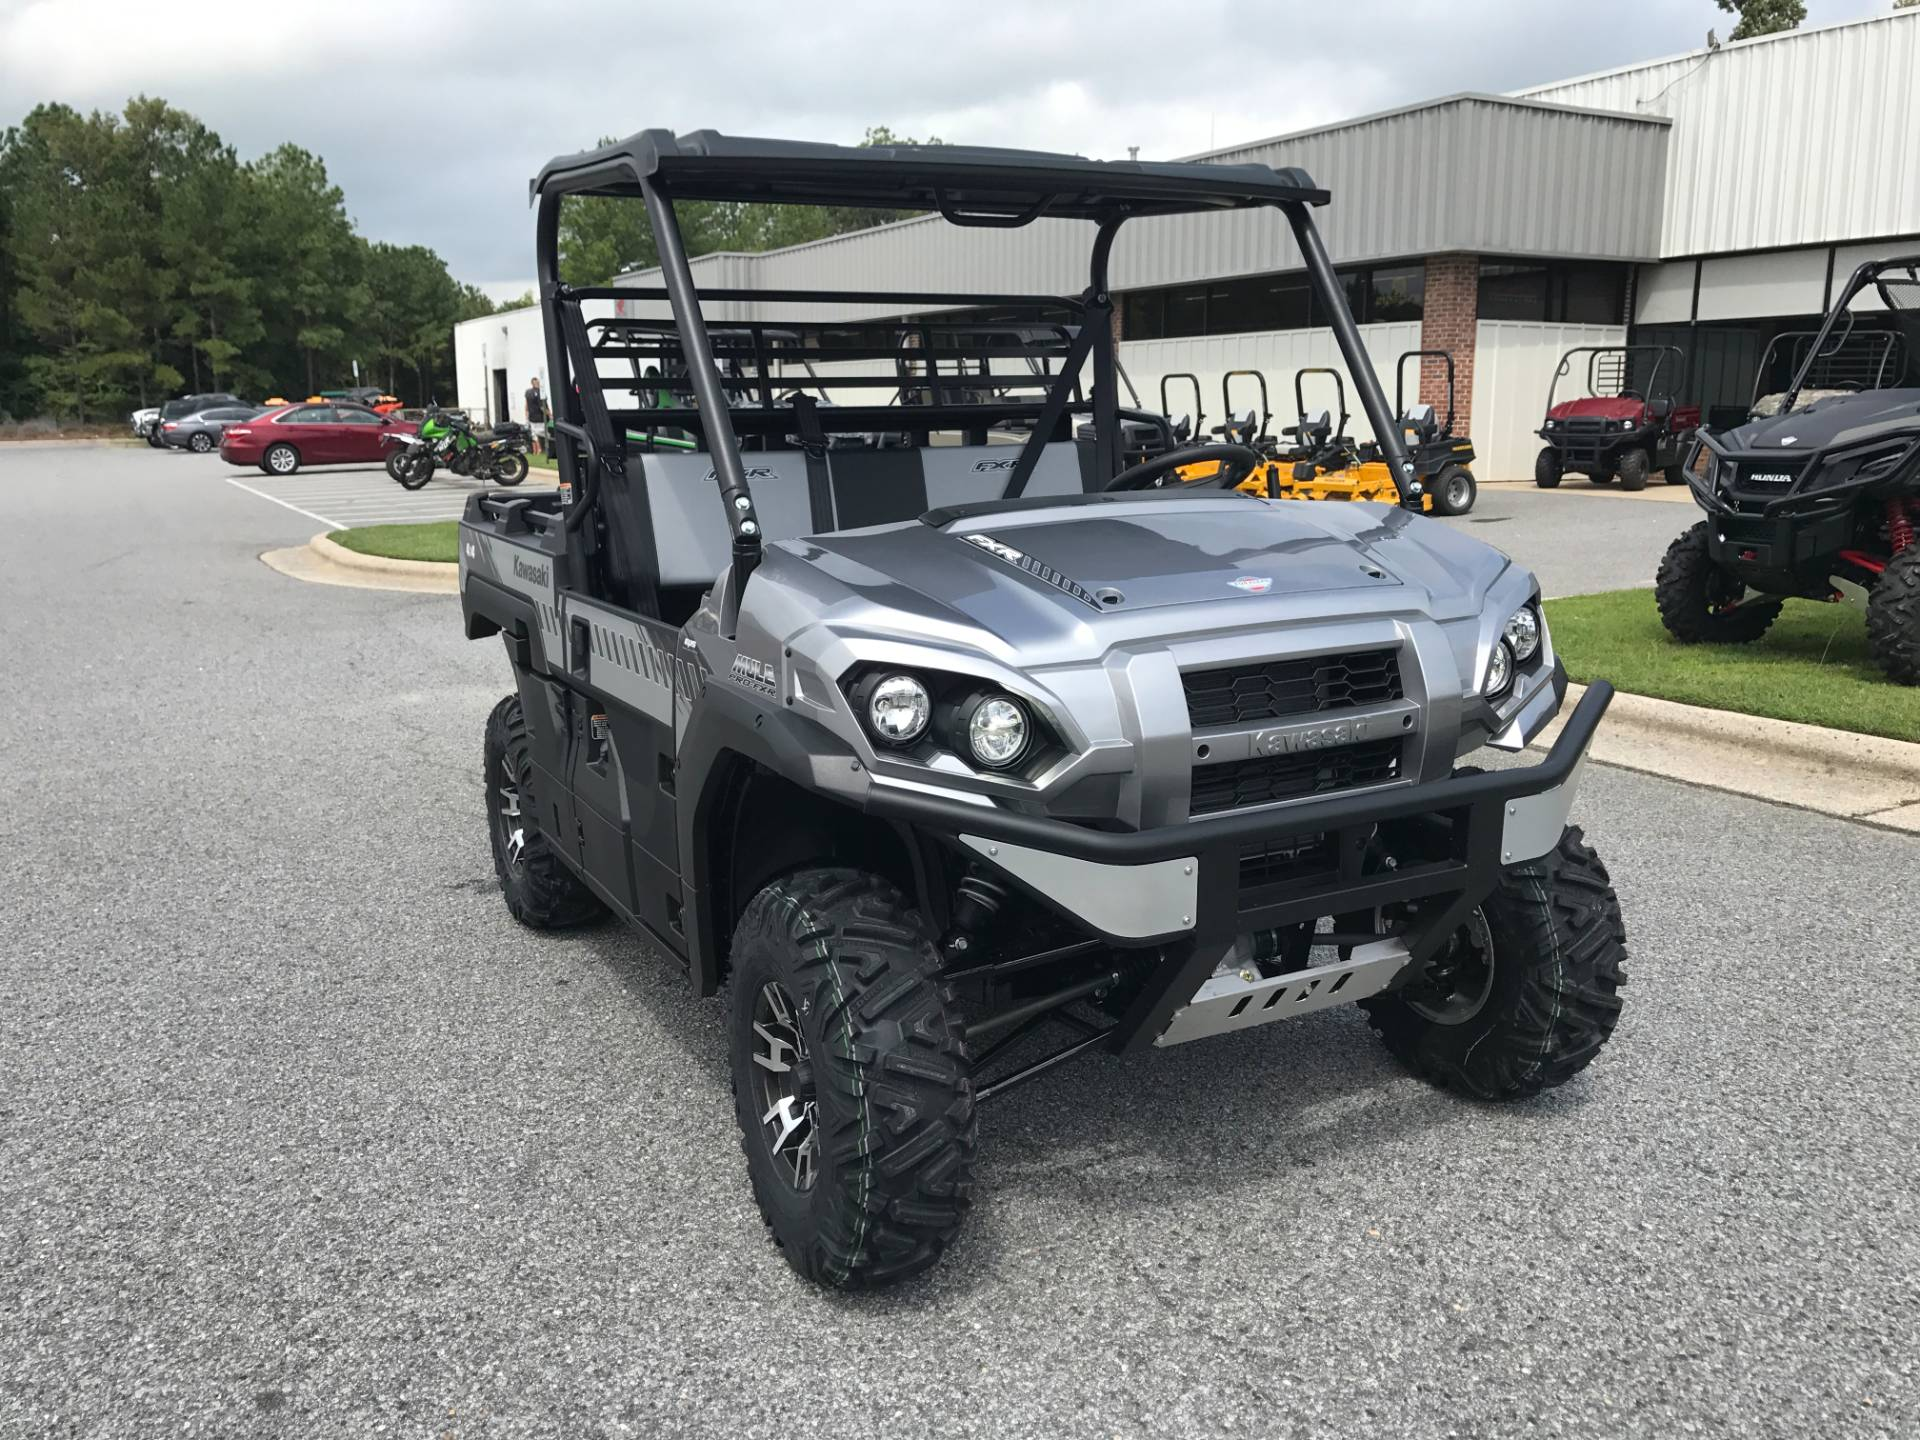 Scooters For Sale Greenville Nc >> 2018 Kawasaki Mule PRO-FXR For Sale Greenville, NC : 68526